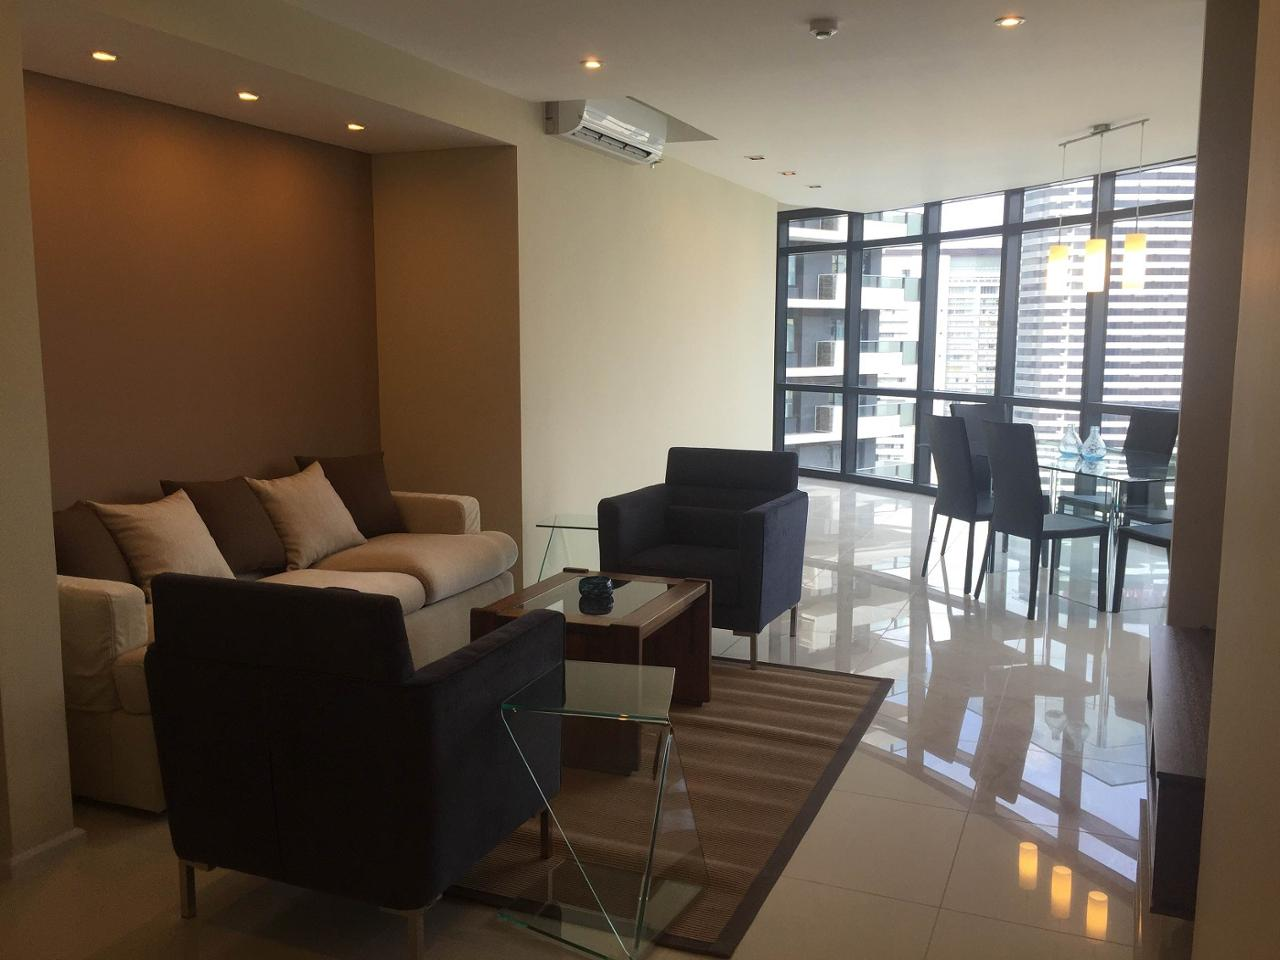 Condominium For Rent in Mckinley Parkway Bonifacio Global City, Bonifacio Global City, Metro Manila